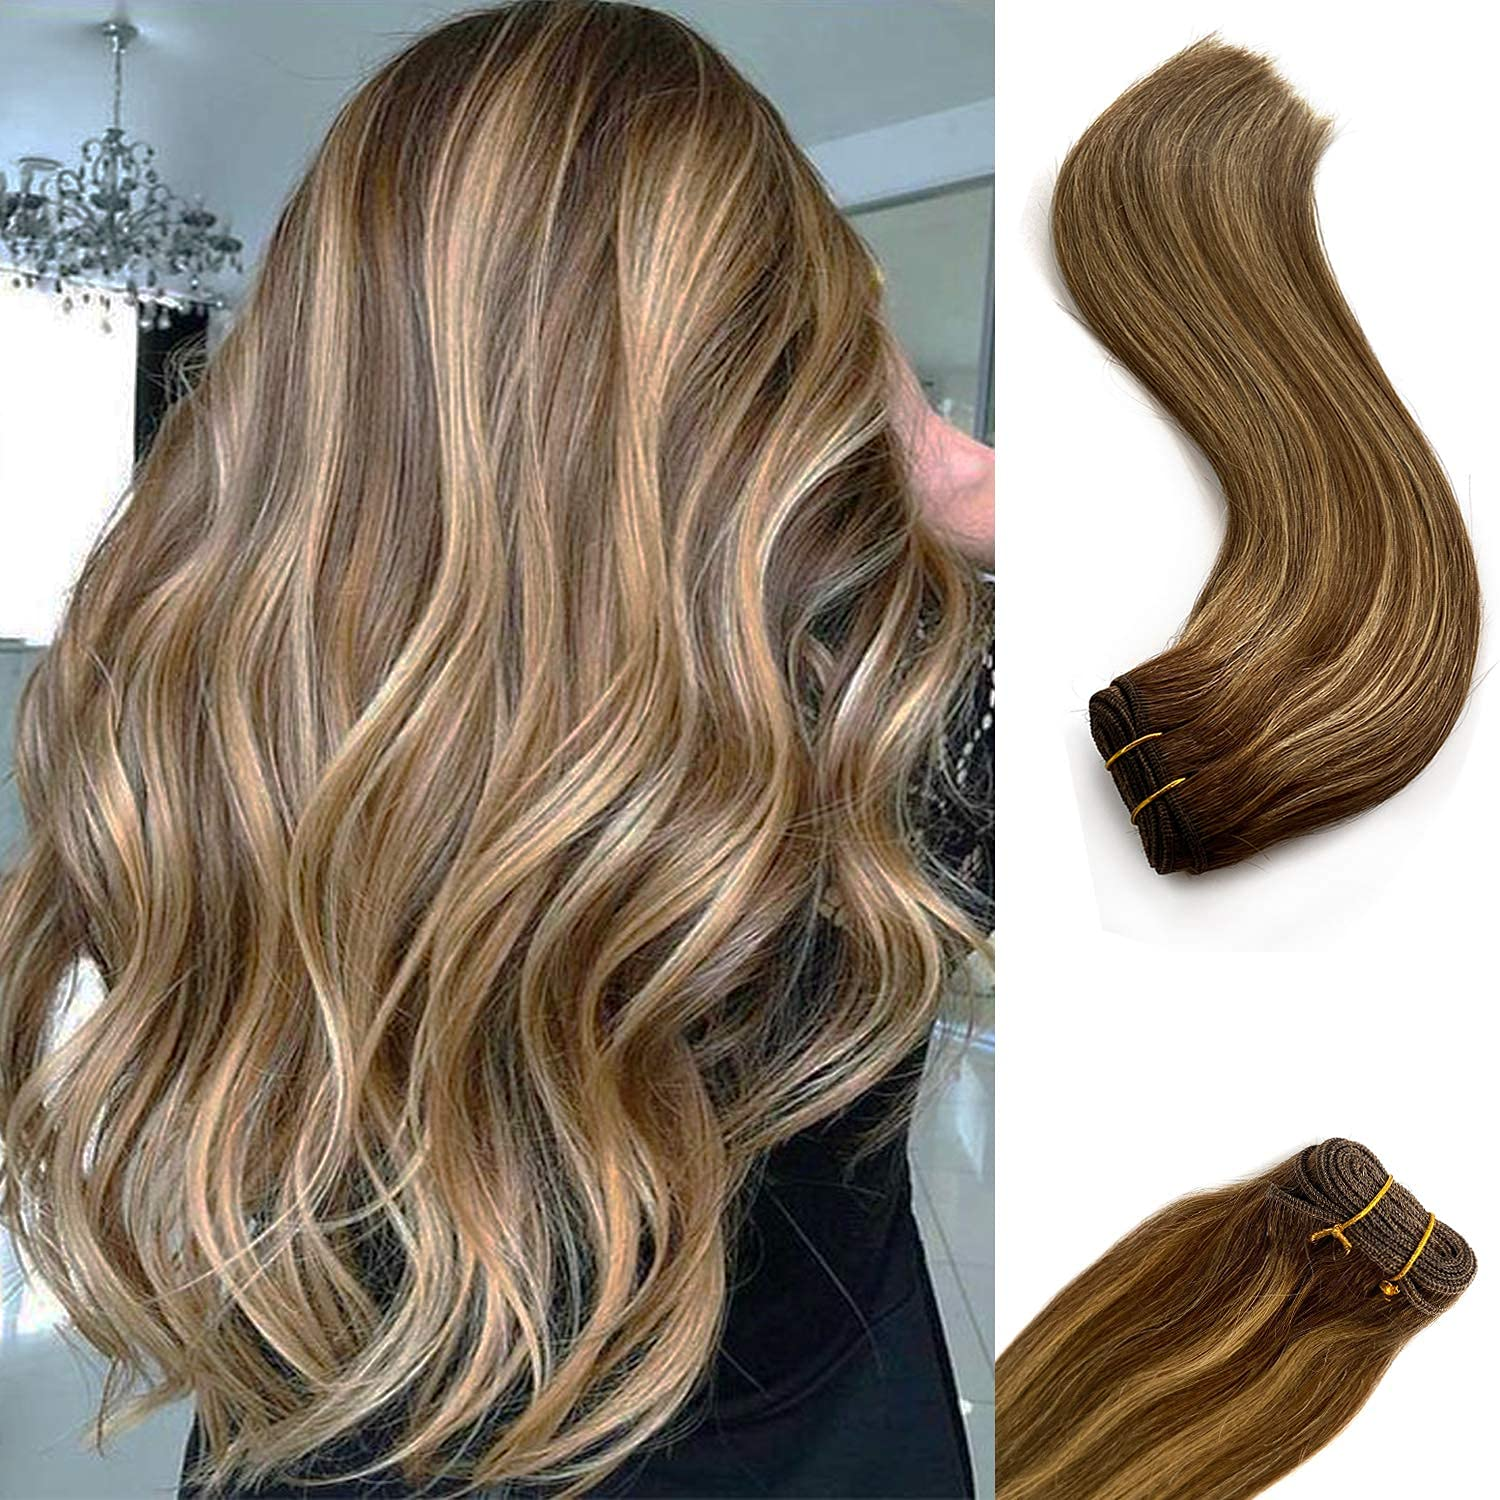 Weft Hair Extensions Sew in Human Women Inc Max 64% OFF for 22 Bundles Super beauty product restock quality top